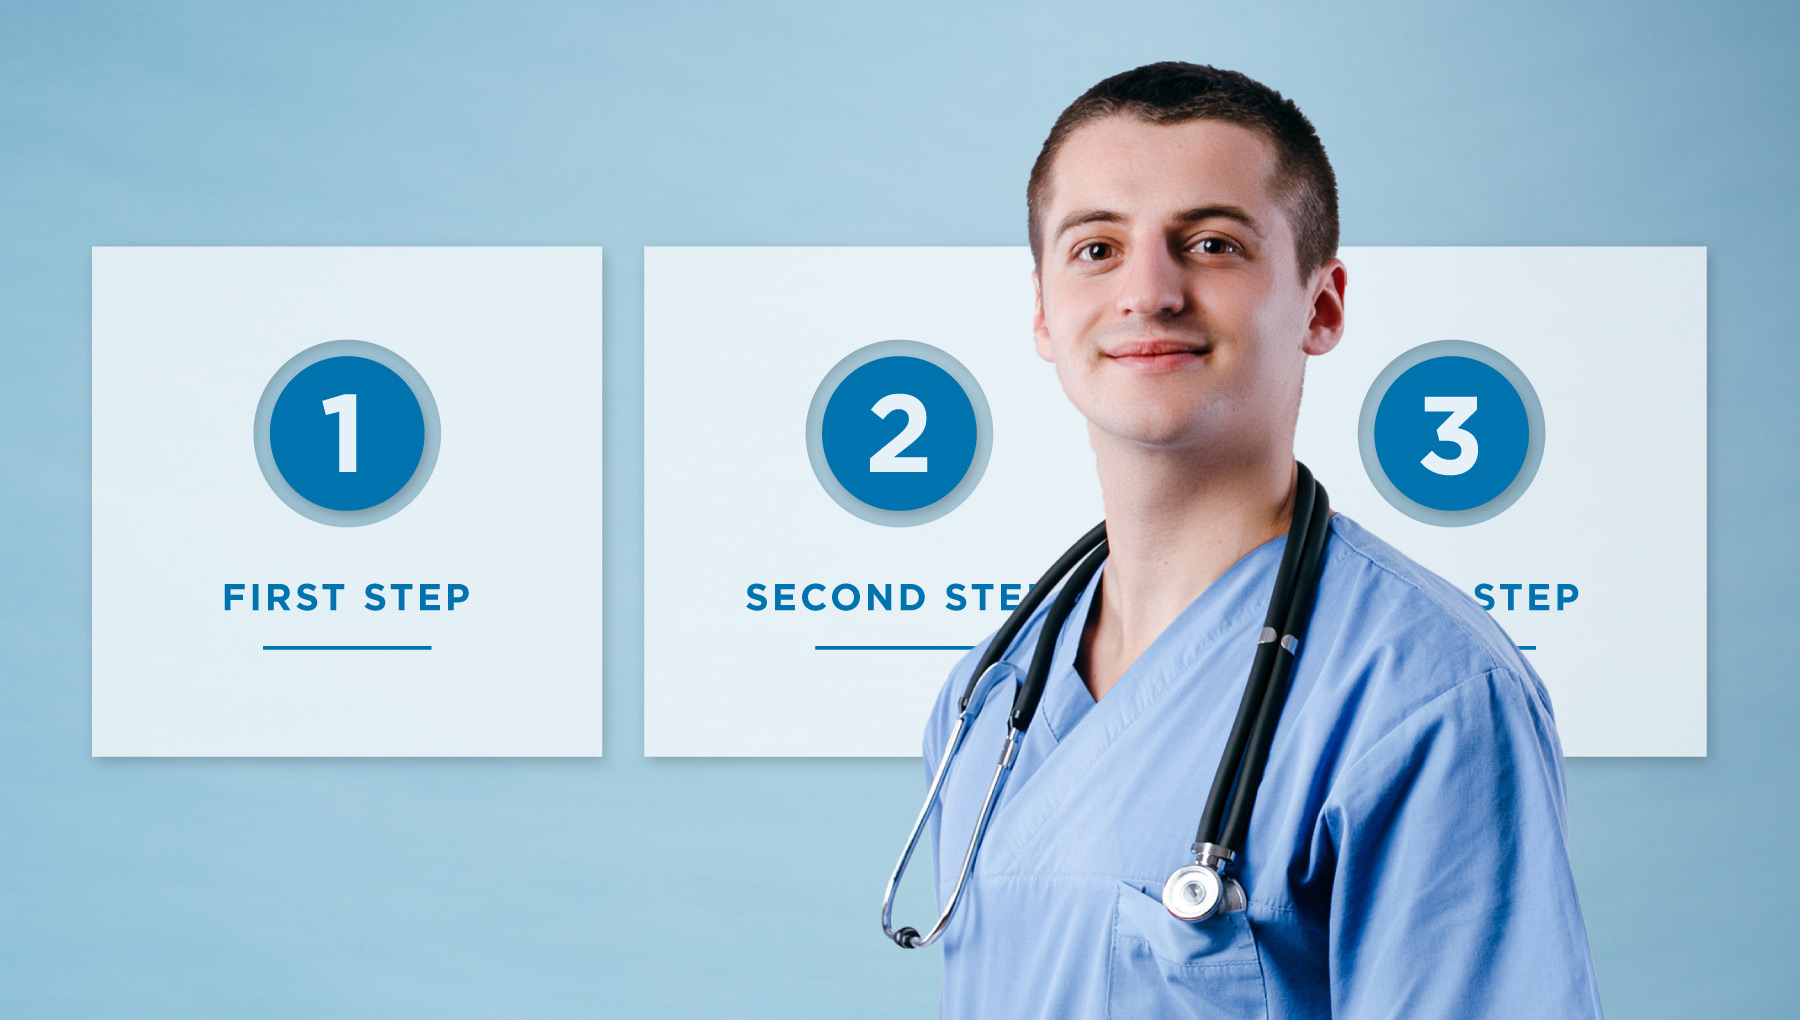 New Doctors: 3 Steps to Follow at the Start of your Practice